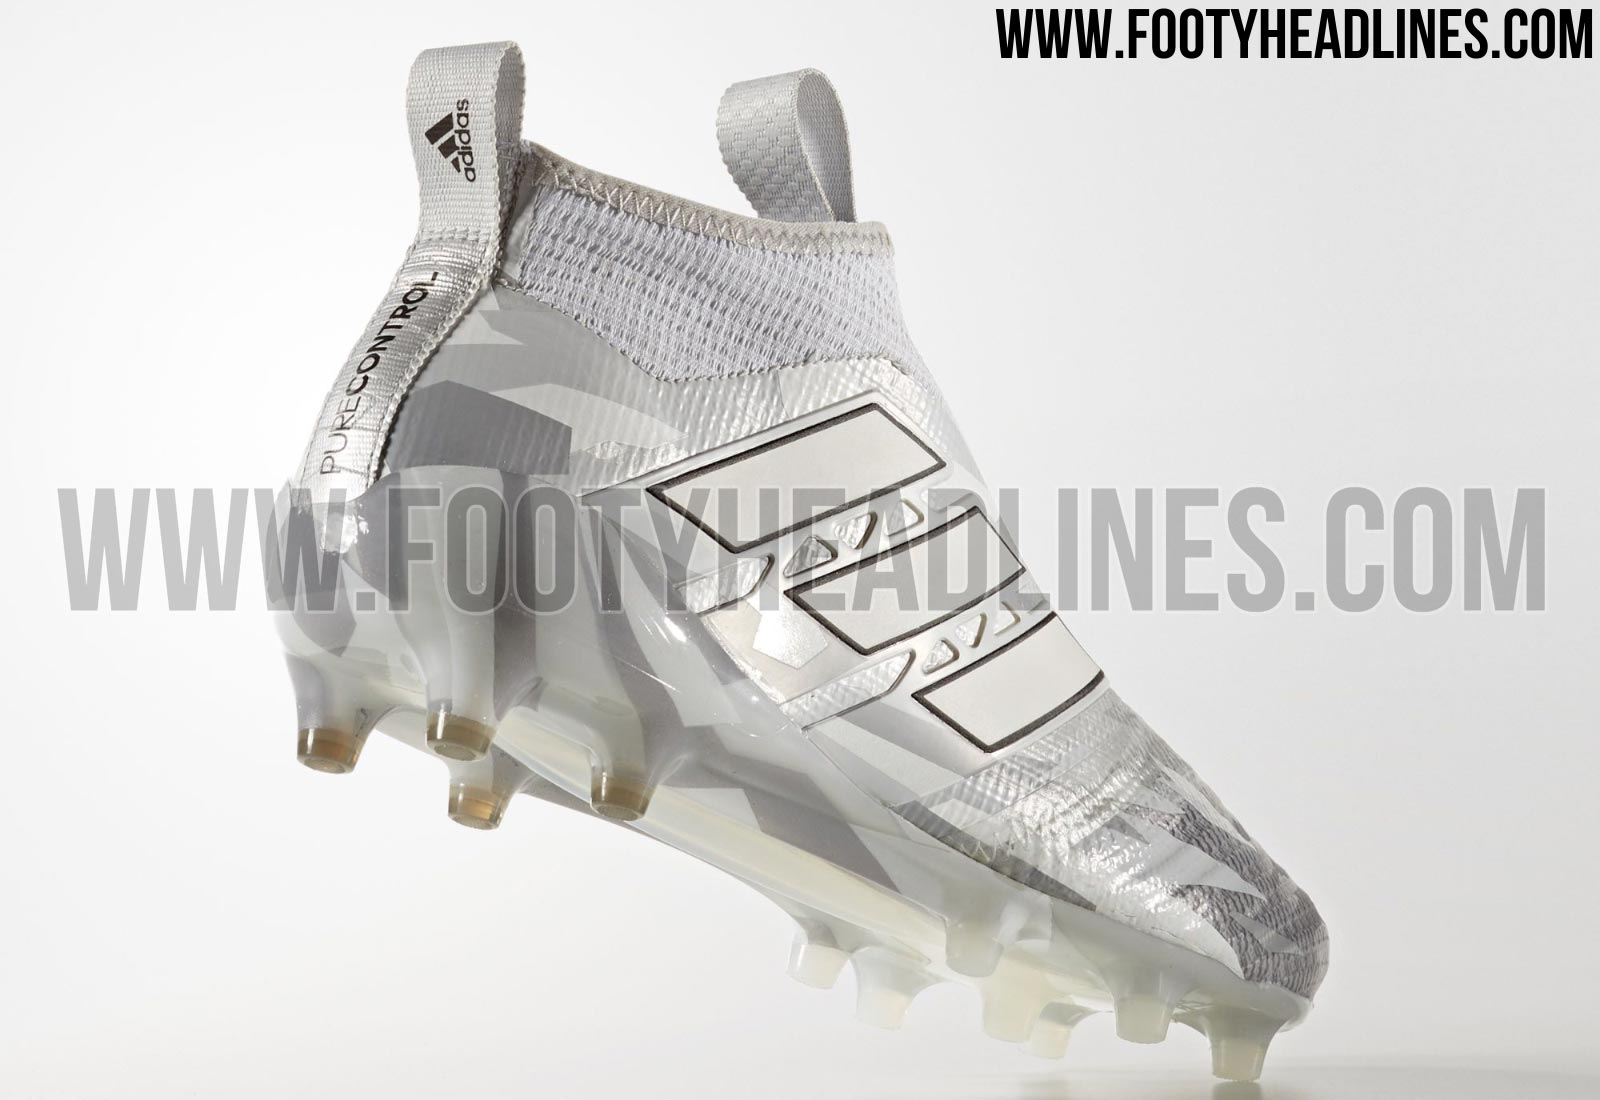 size 40 9c64b c13ba ... inexpensive this image shows the camouflage pack adidas ace 17  purecontrol cleats. a4aeb 4ba66